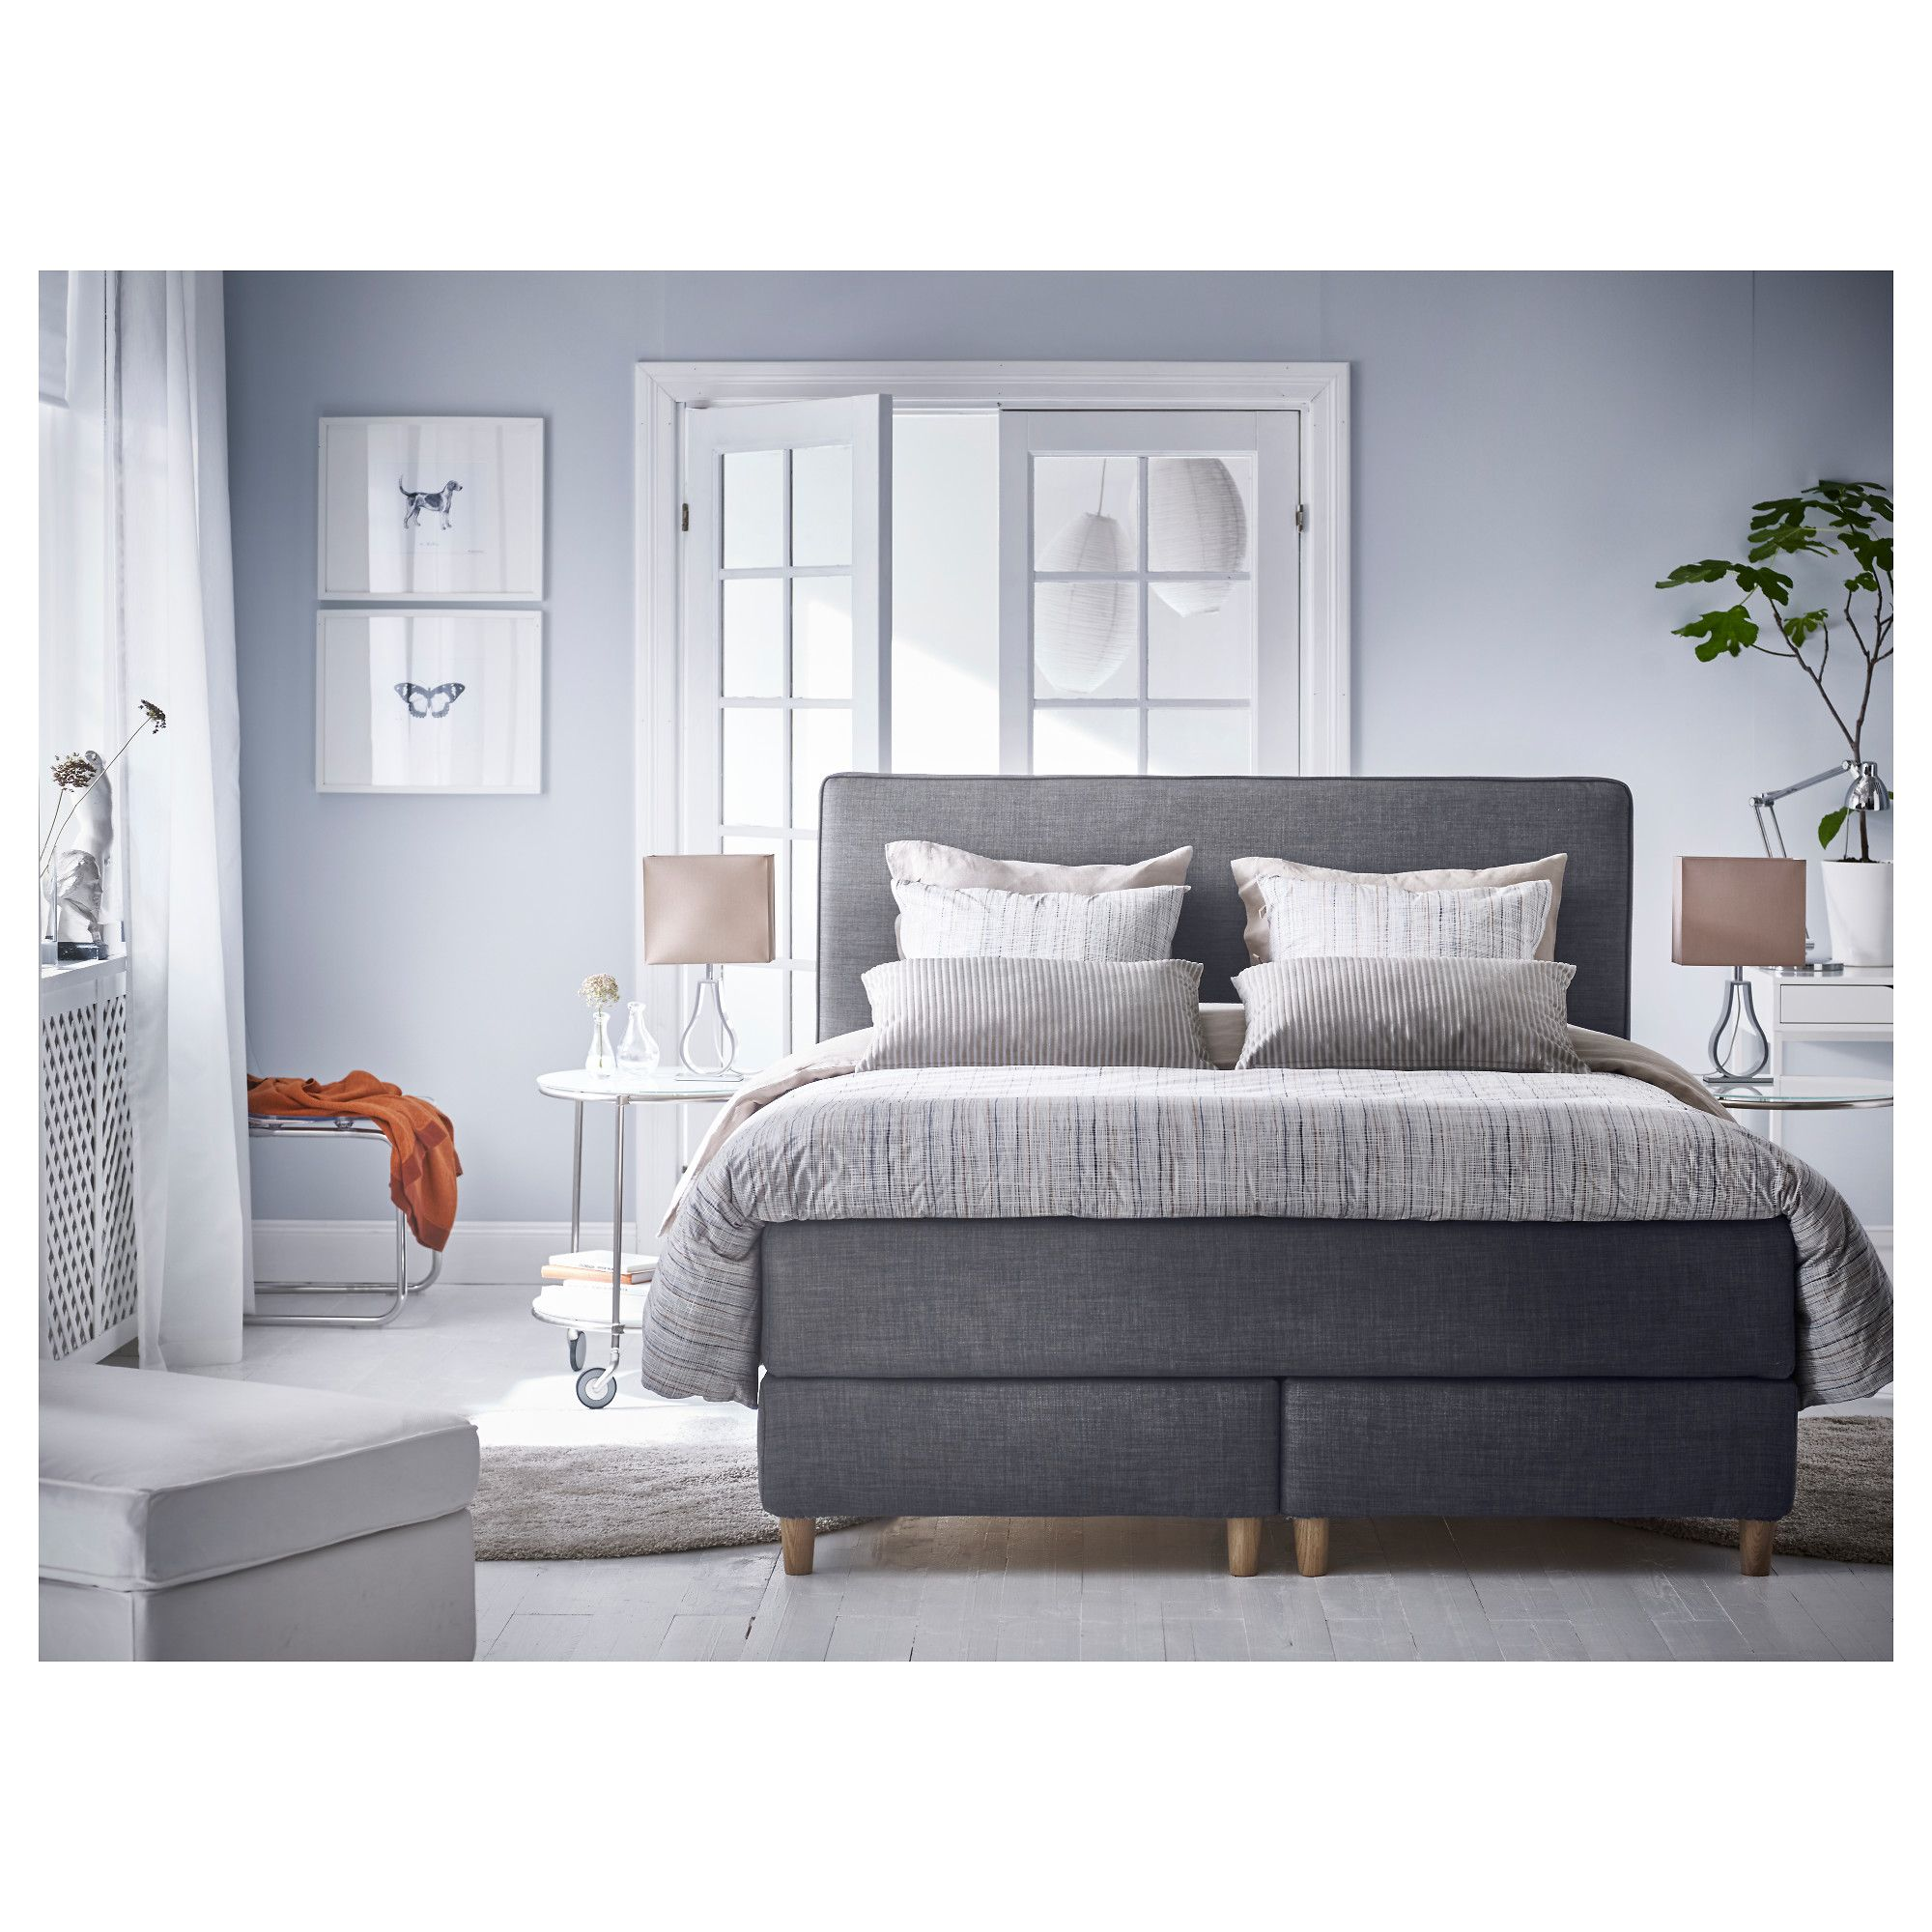 ikea dunvik kontinentals ng h v g fast tuddal m rkgr 180x200 cm brynilen en stilren. Black Bedroom Furniture Sets. Home Design Ideas